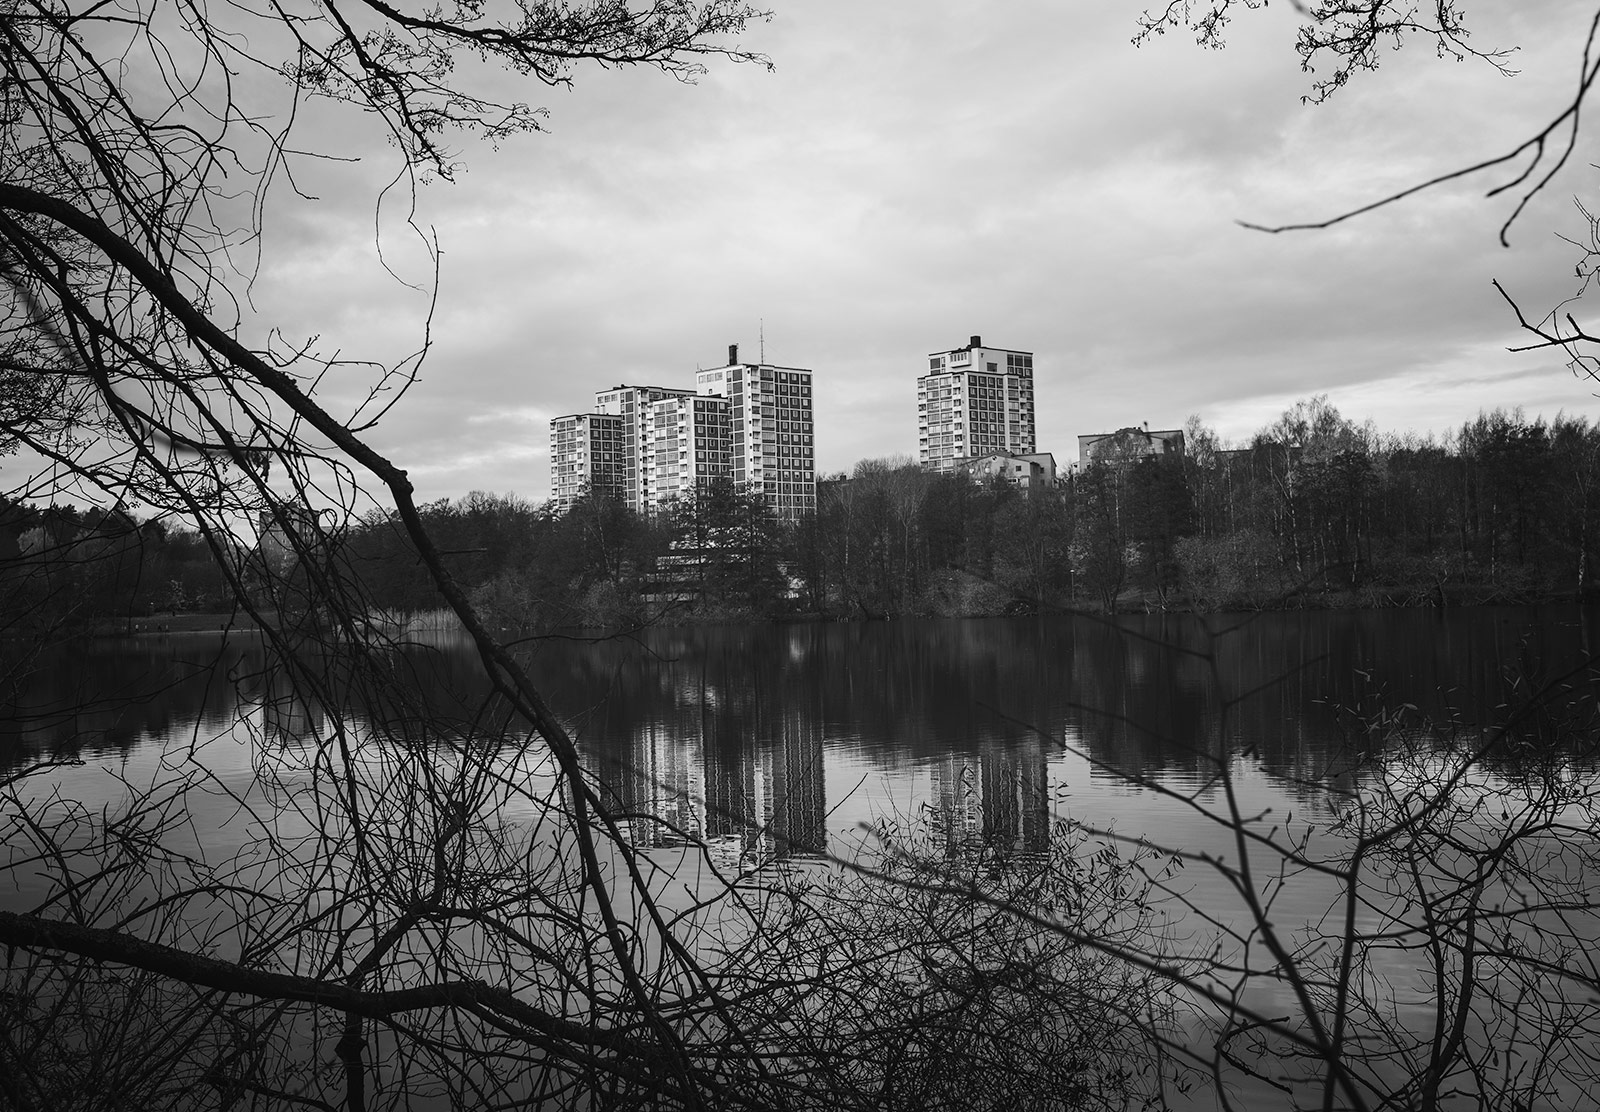 Tower blocks reflected in water